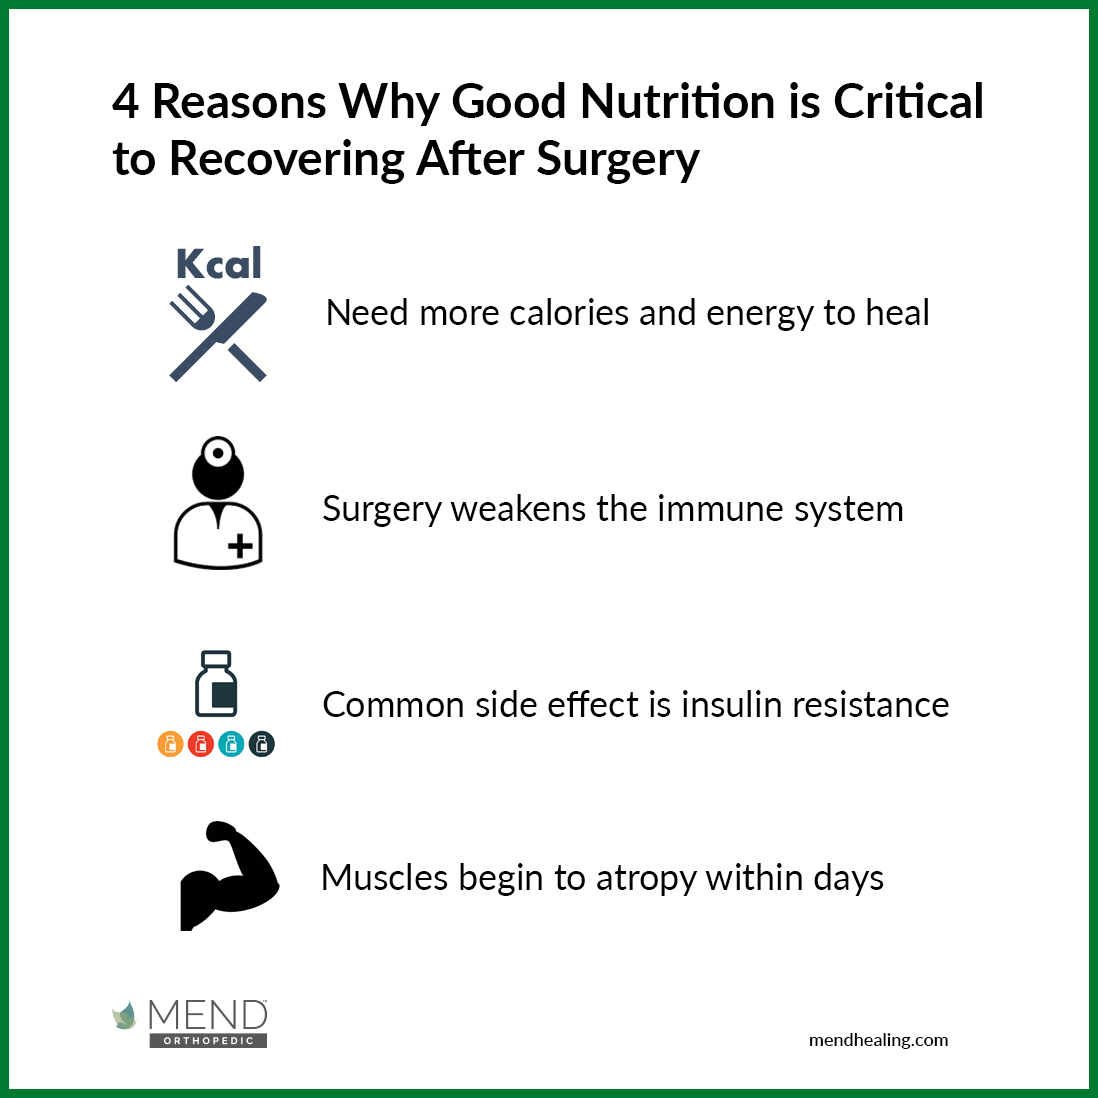 4 Reasons Why Good Nutrition is Critical to Recovering After Surgery